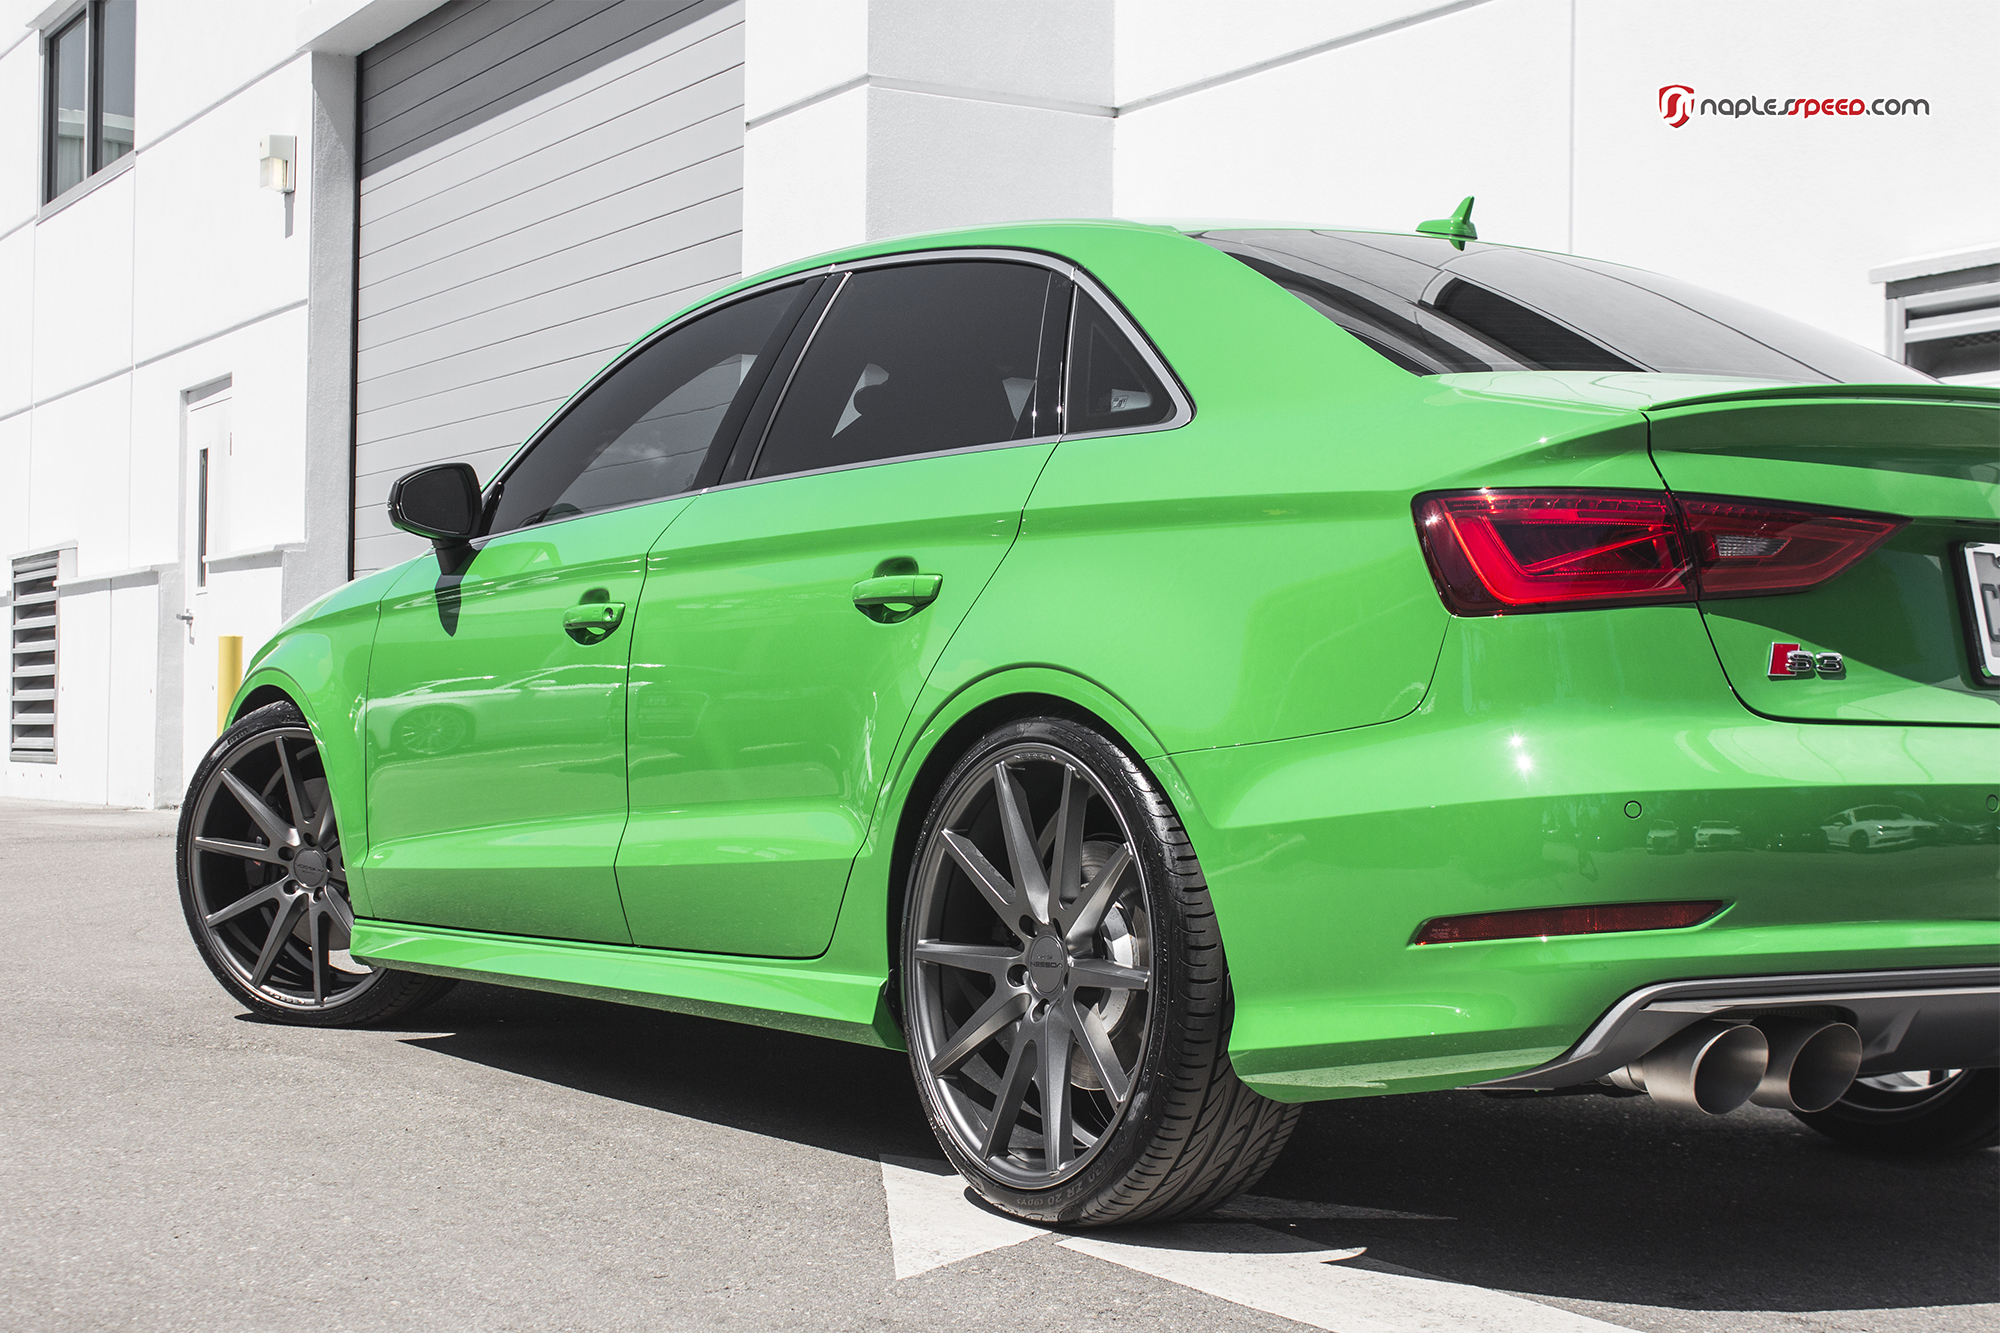 Exclusive Audi S3 Shot By Naples Speed Advanced